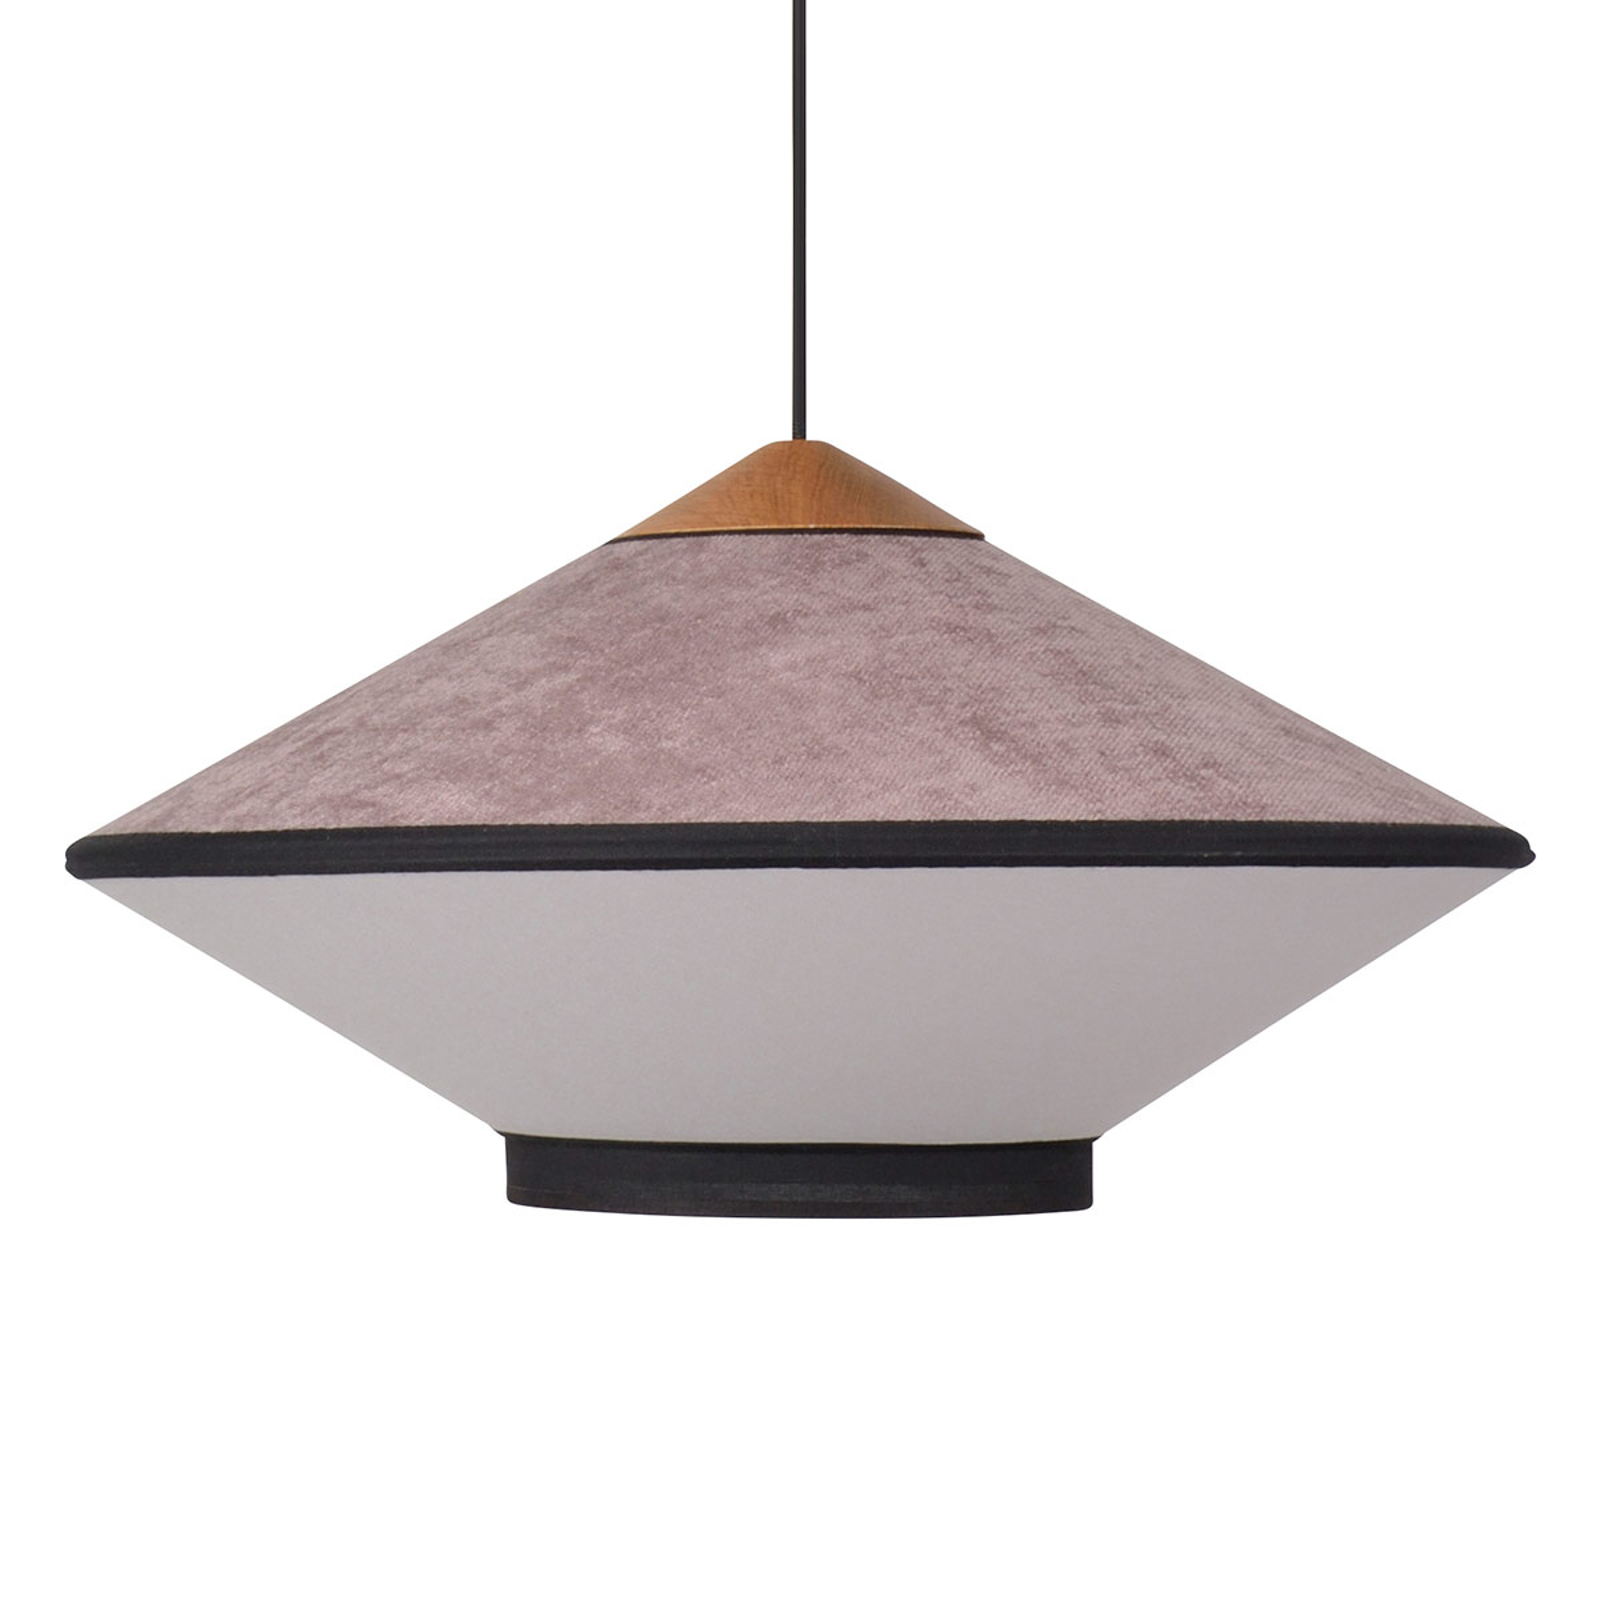 Forestier Cymbal S Pendelleuchte 50cm pink